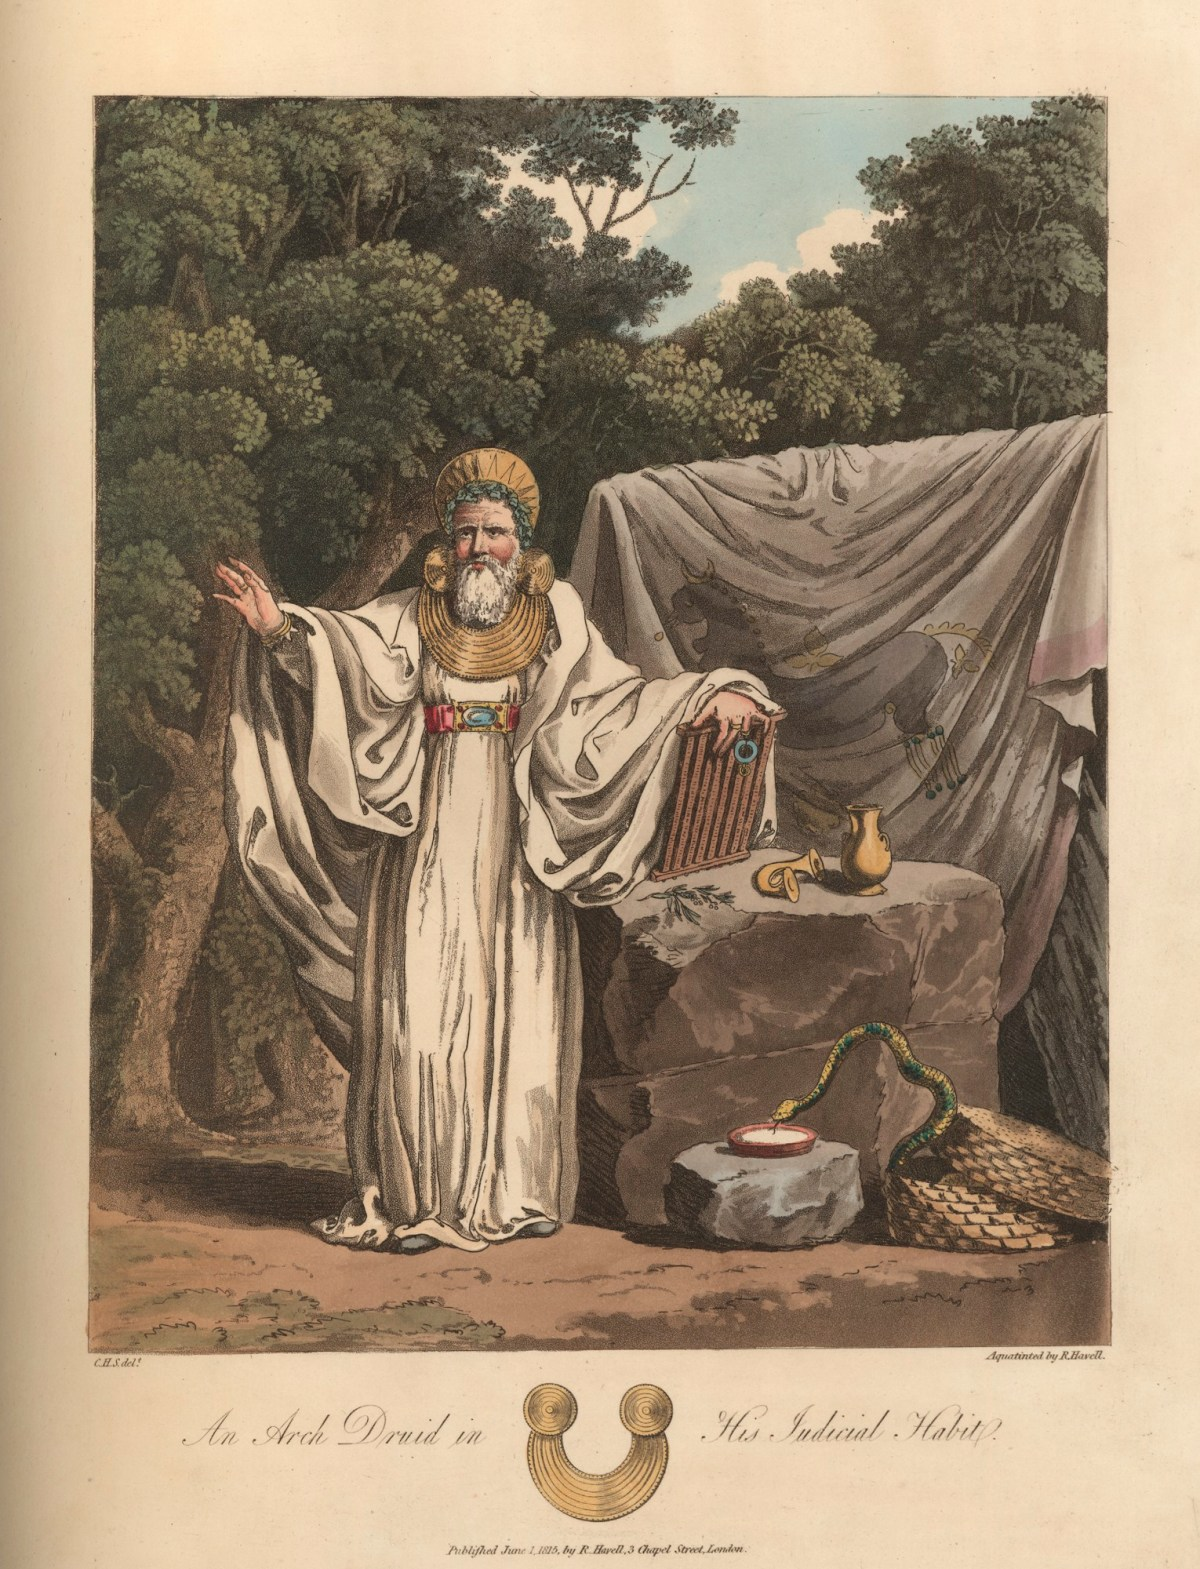 An Arch Druid In His Judicial Habit Works Of Art Ra Collection Royal Academy Of Arts